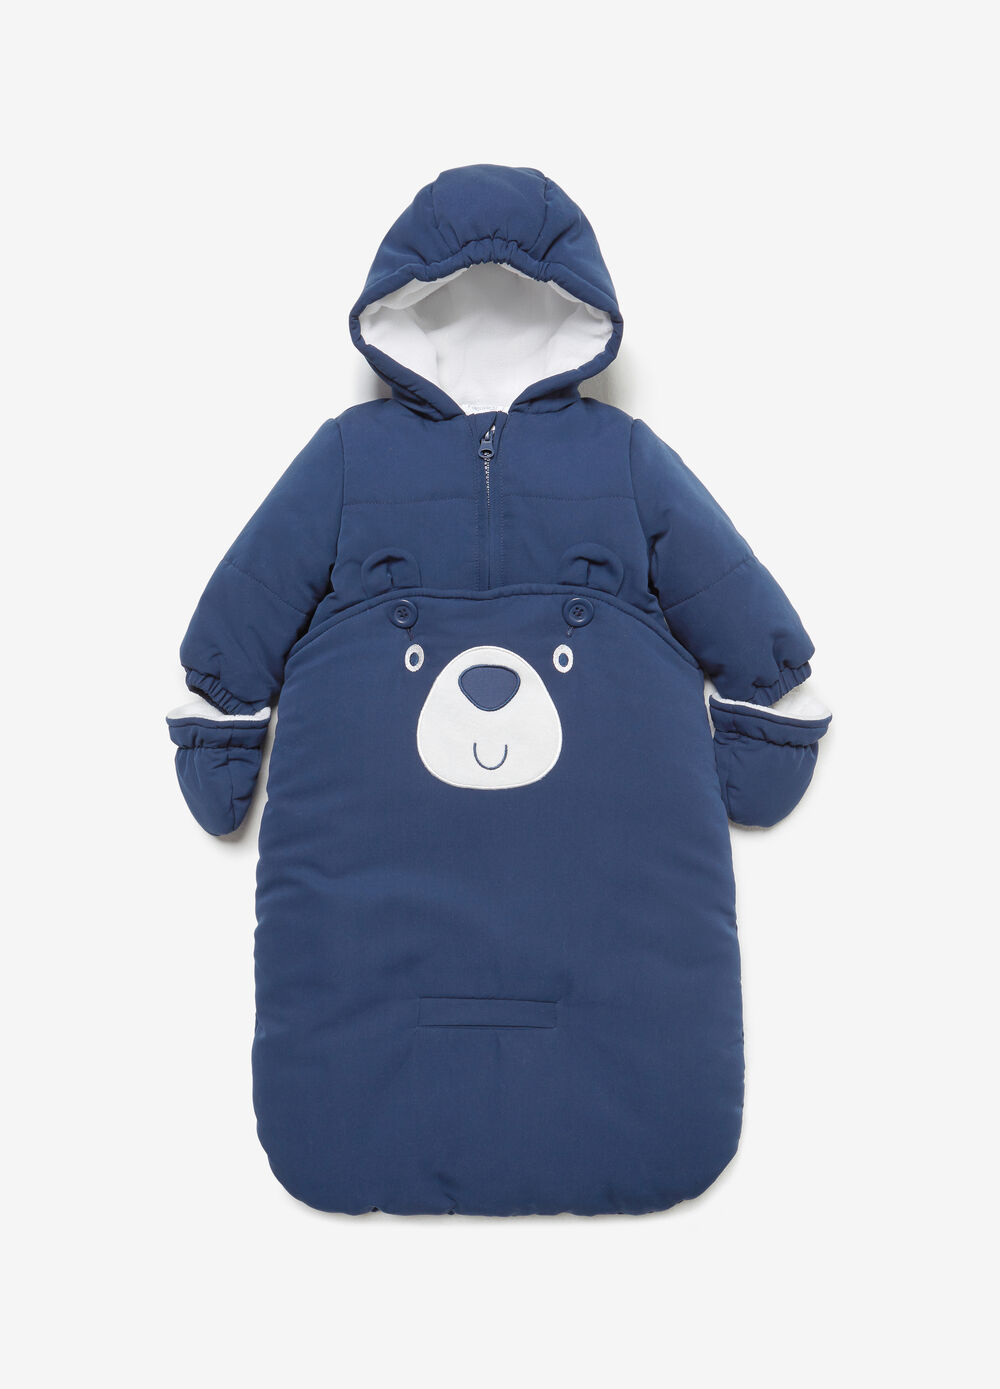 Solid colour baby sleeping bag with mittens